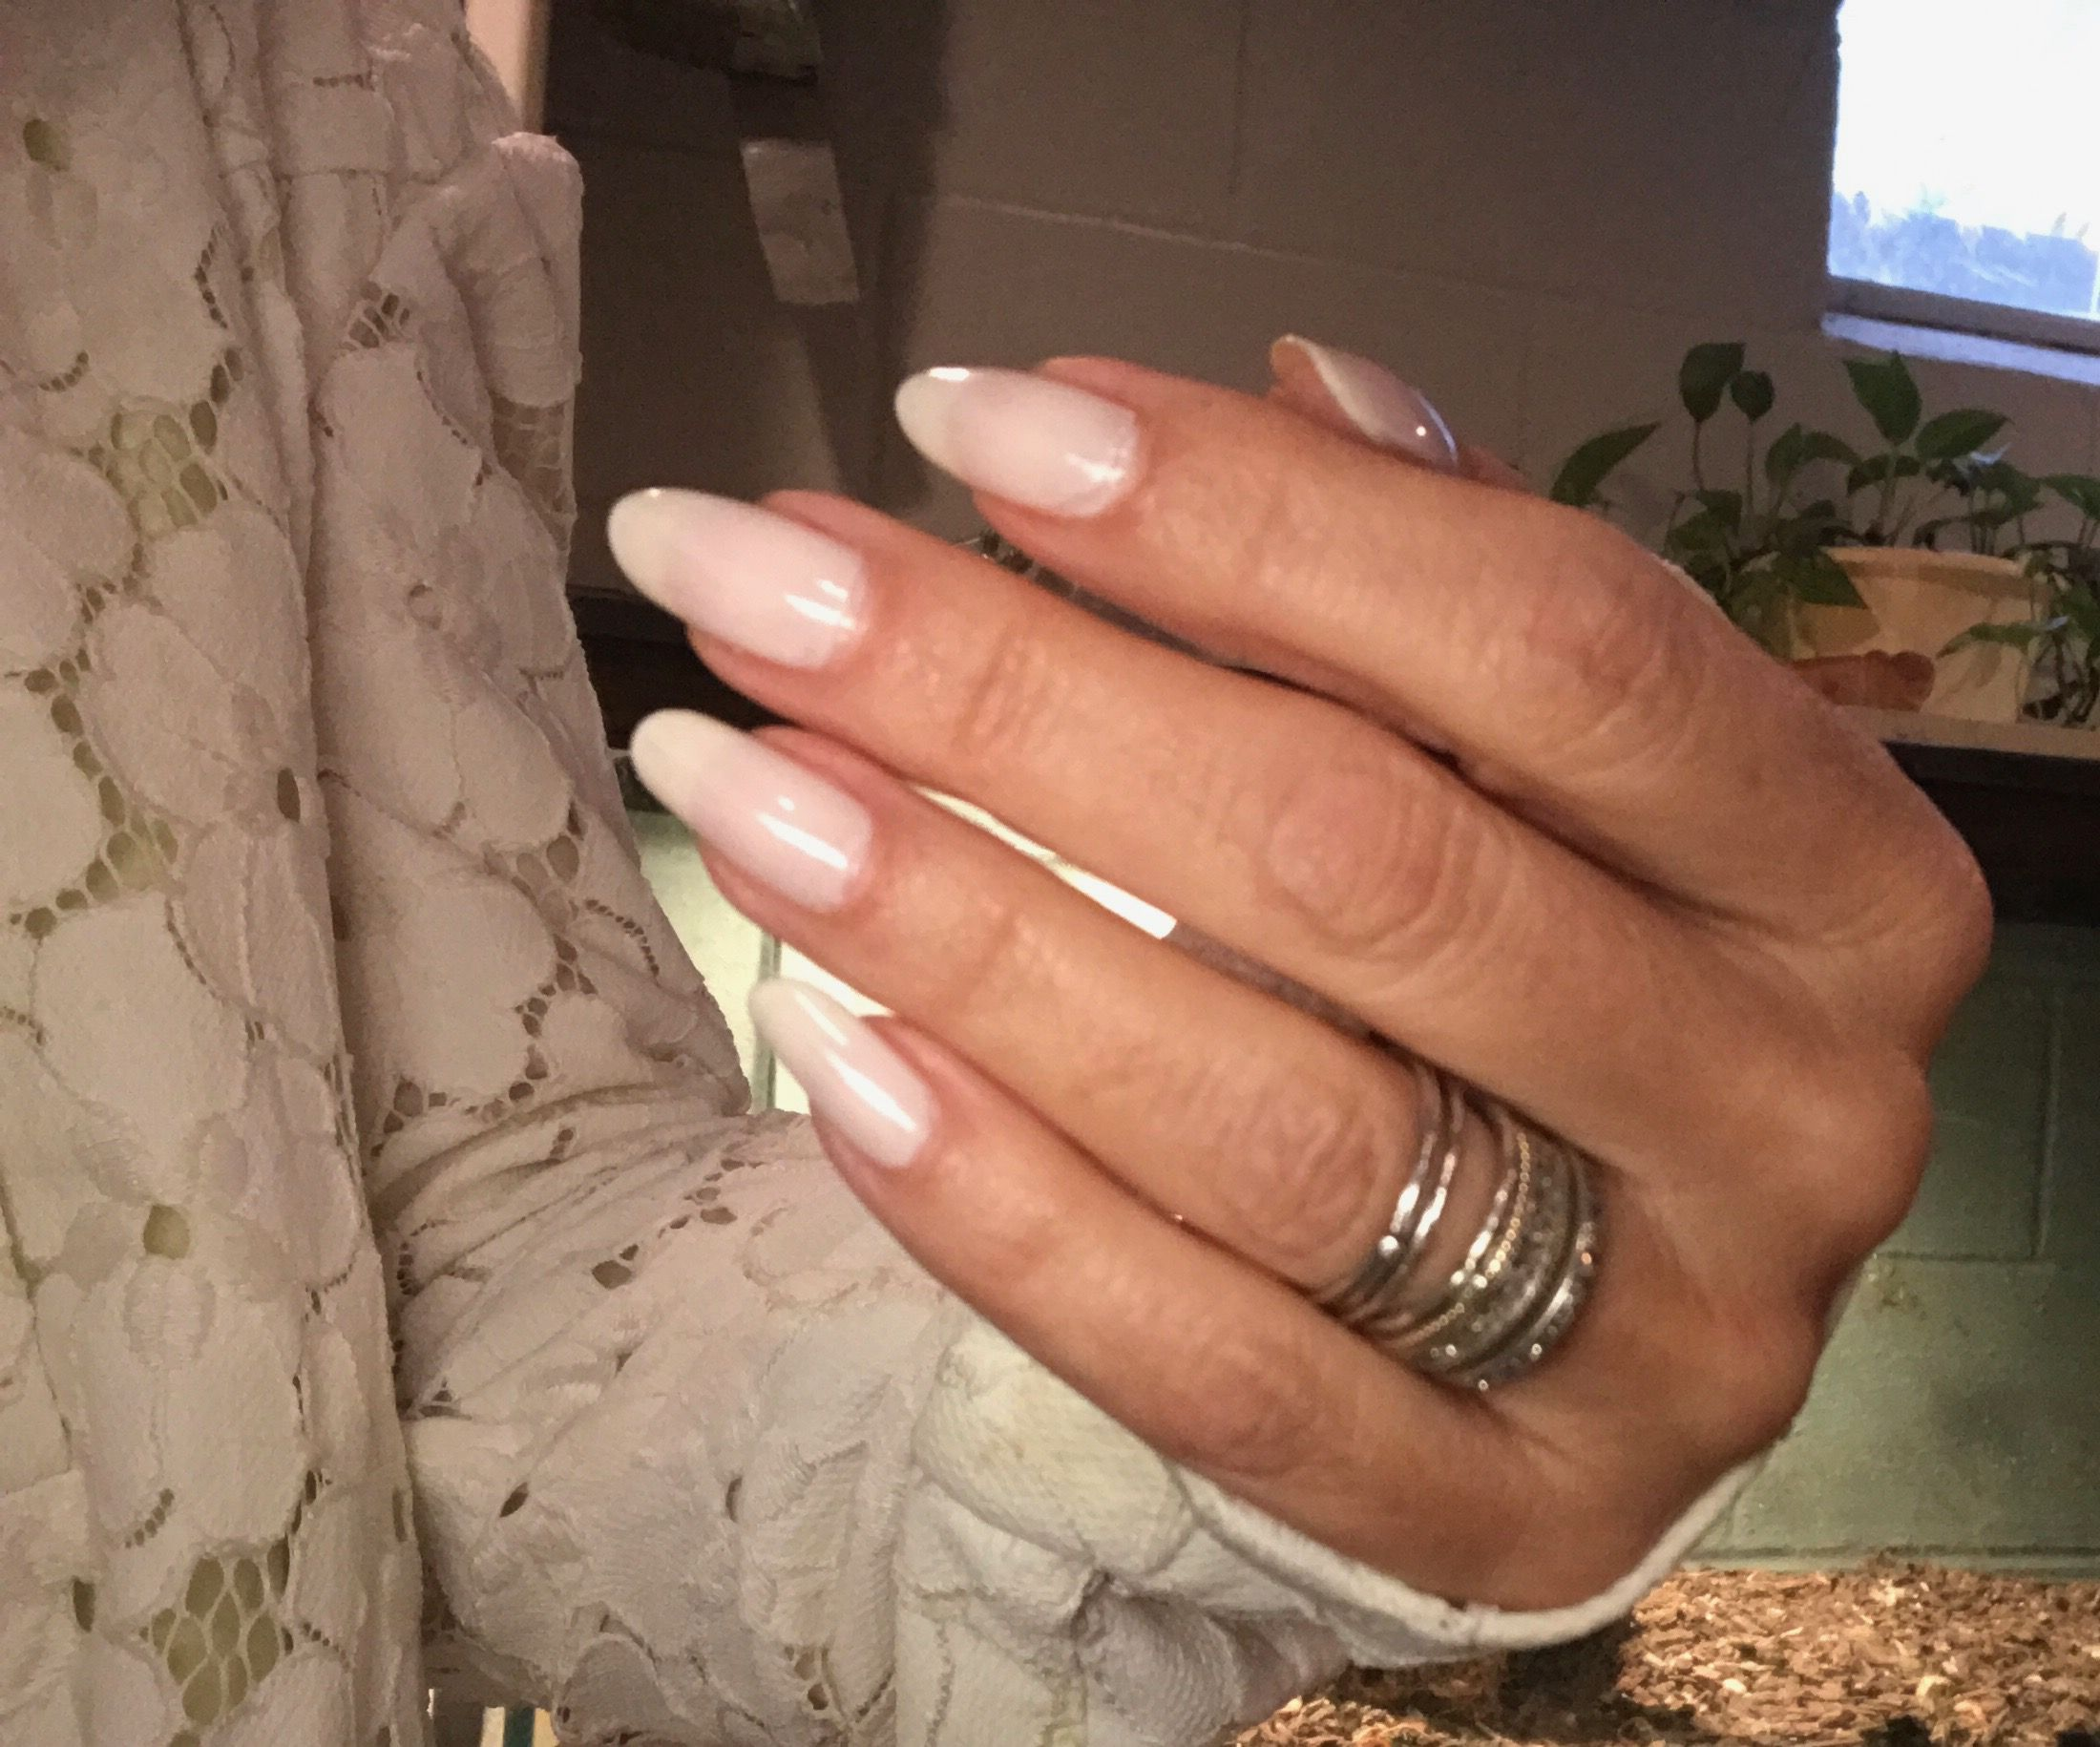 Long oval nails at life on mars beauty | Cynthia\'s Nail and Lip ...